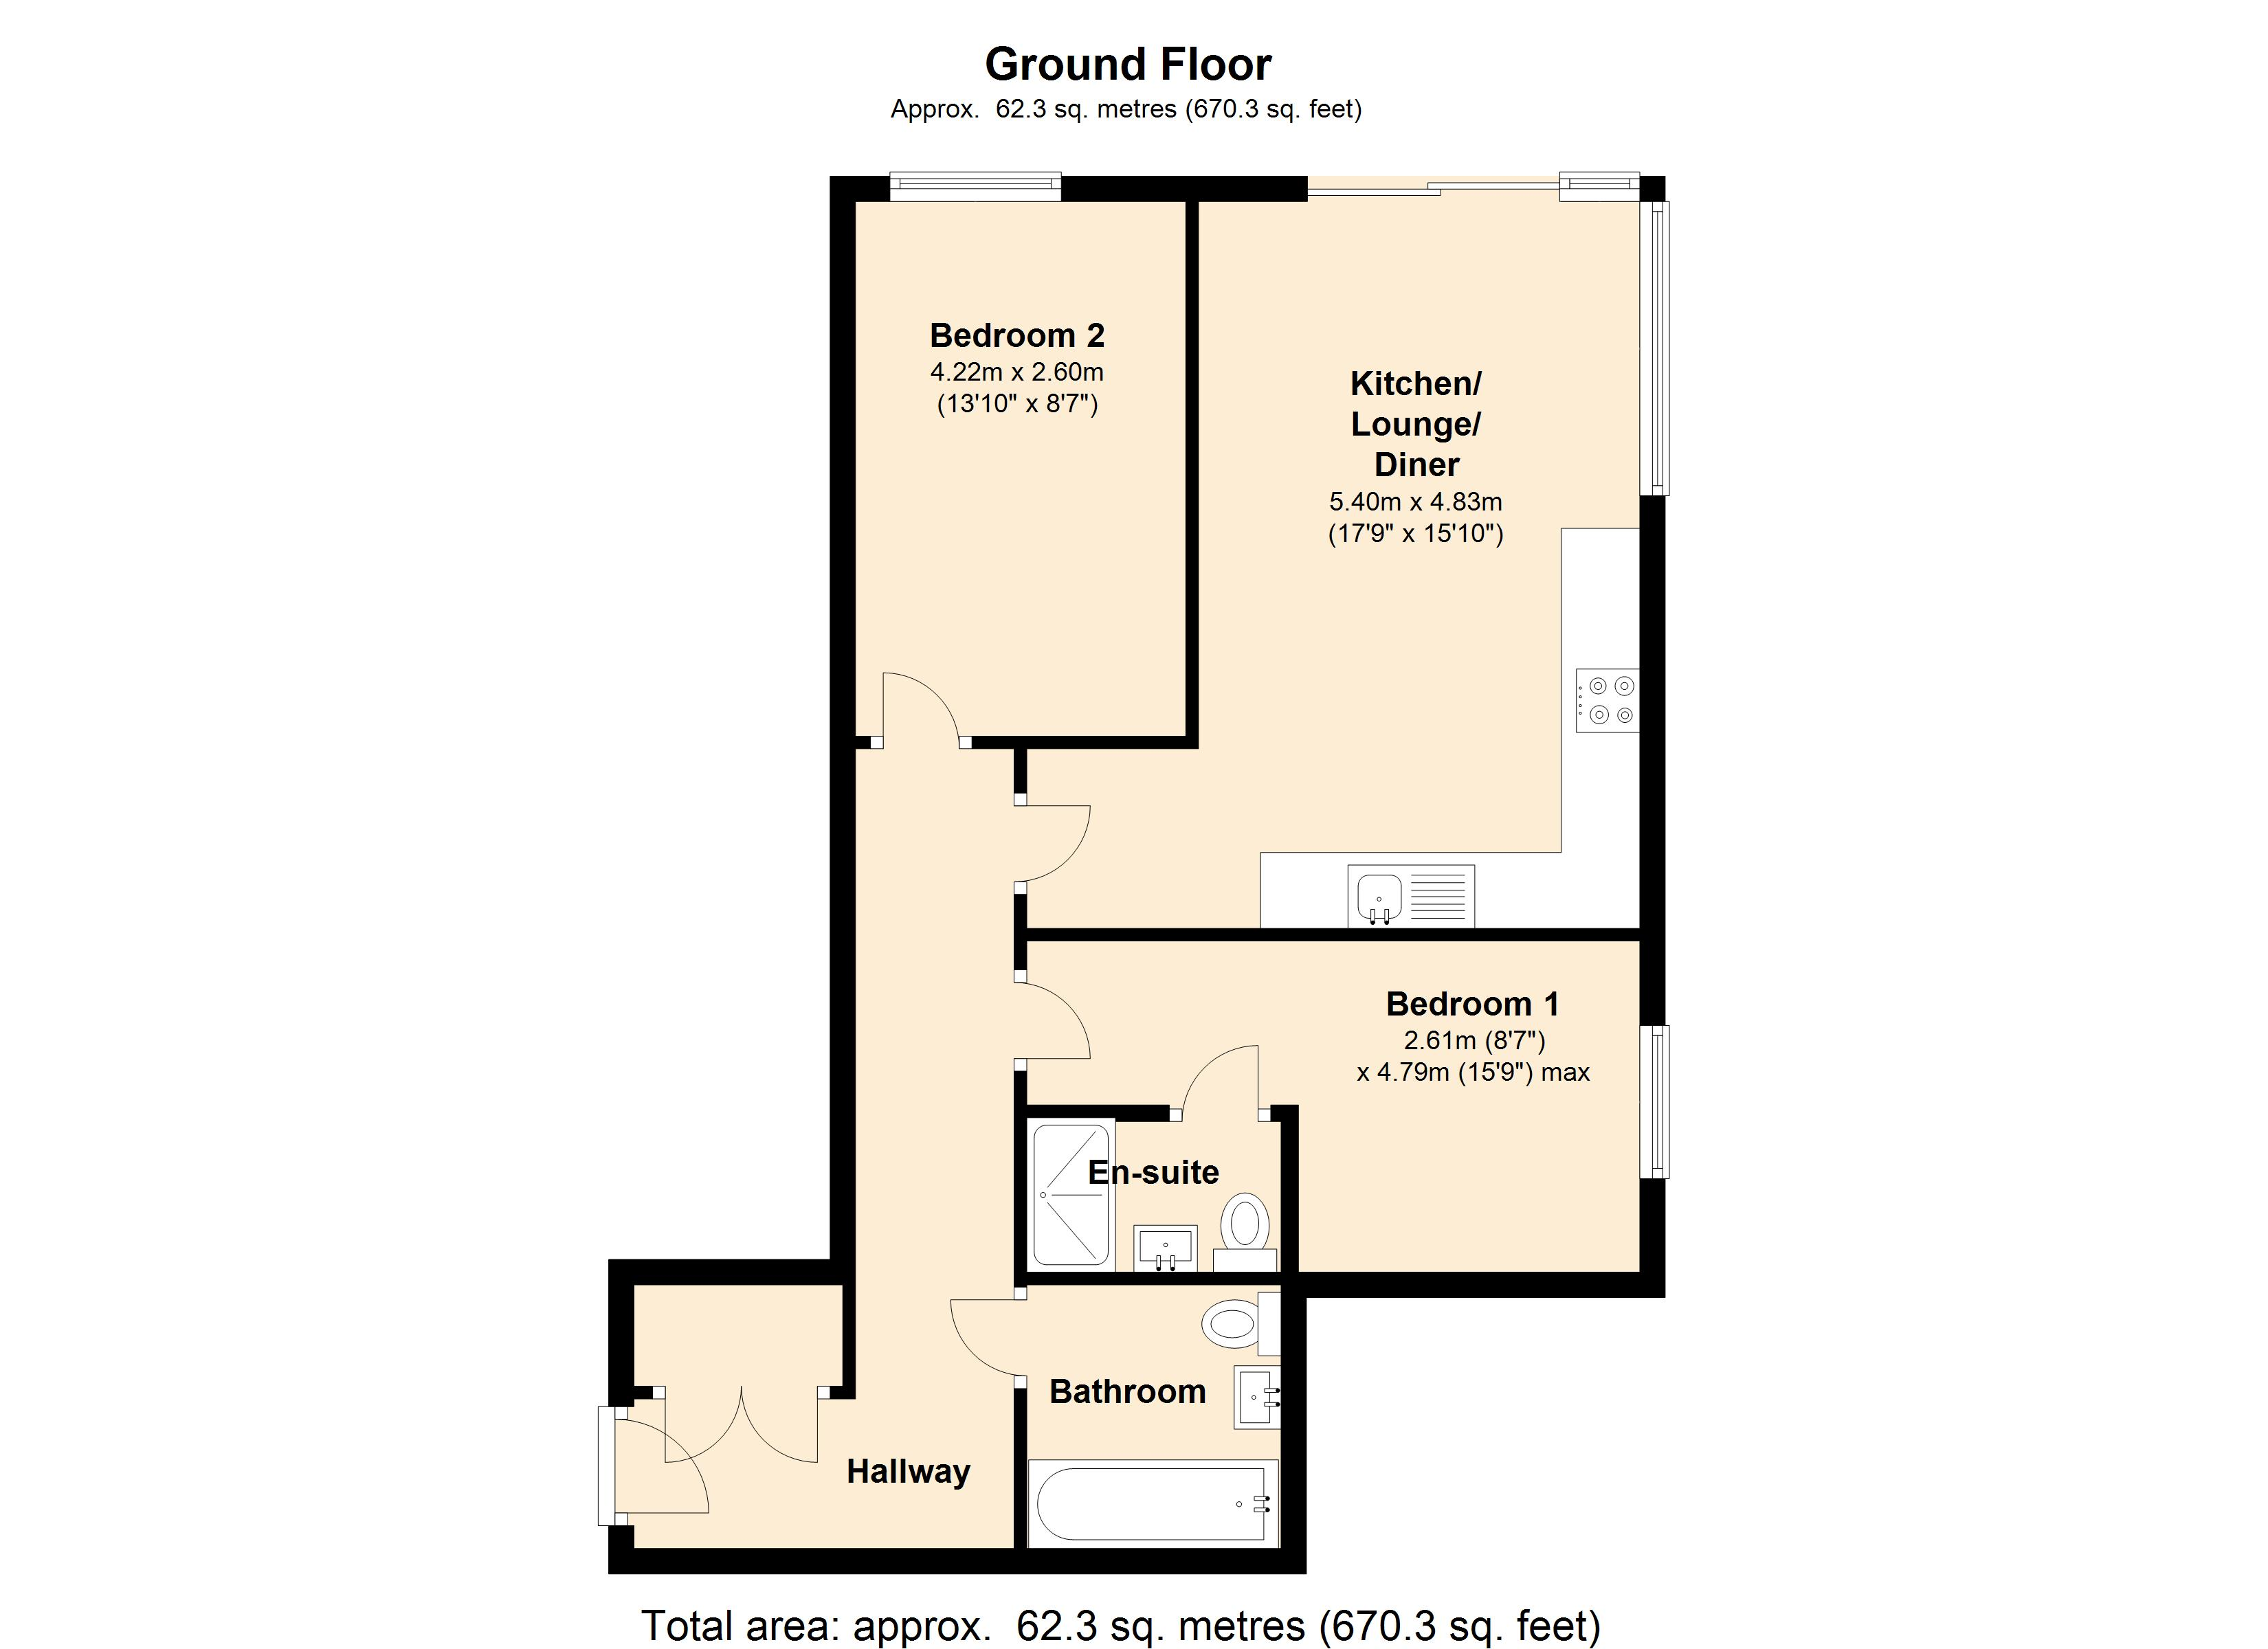 Plaza Quarter 1, Fitzwilliam Street, Barnsley, S70 floor plan